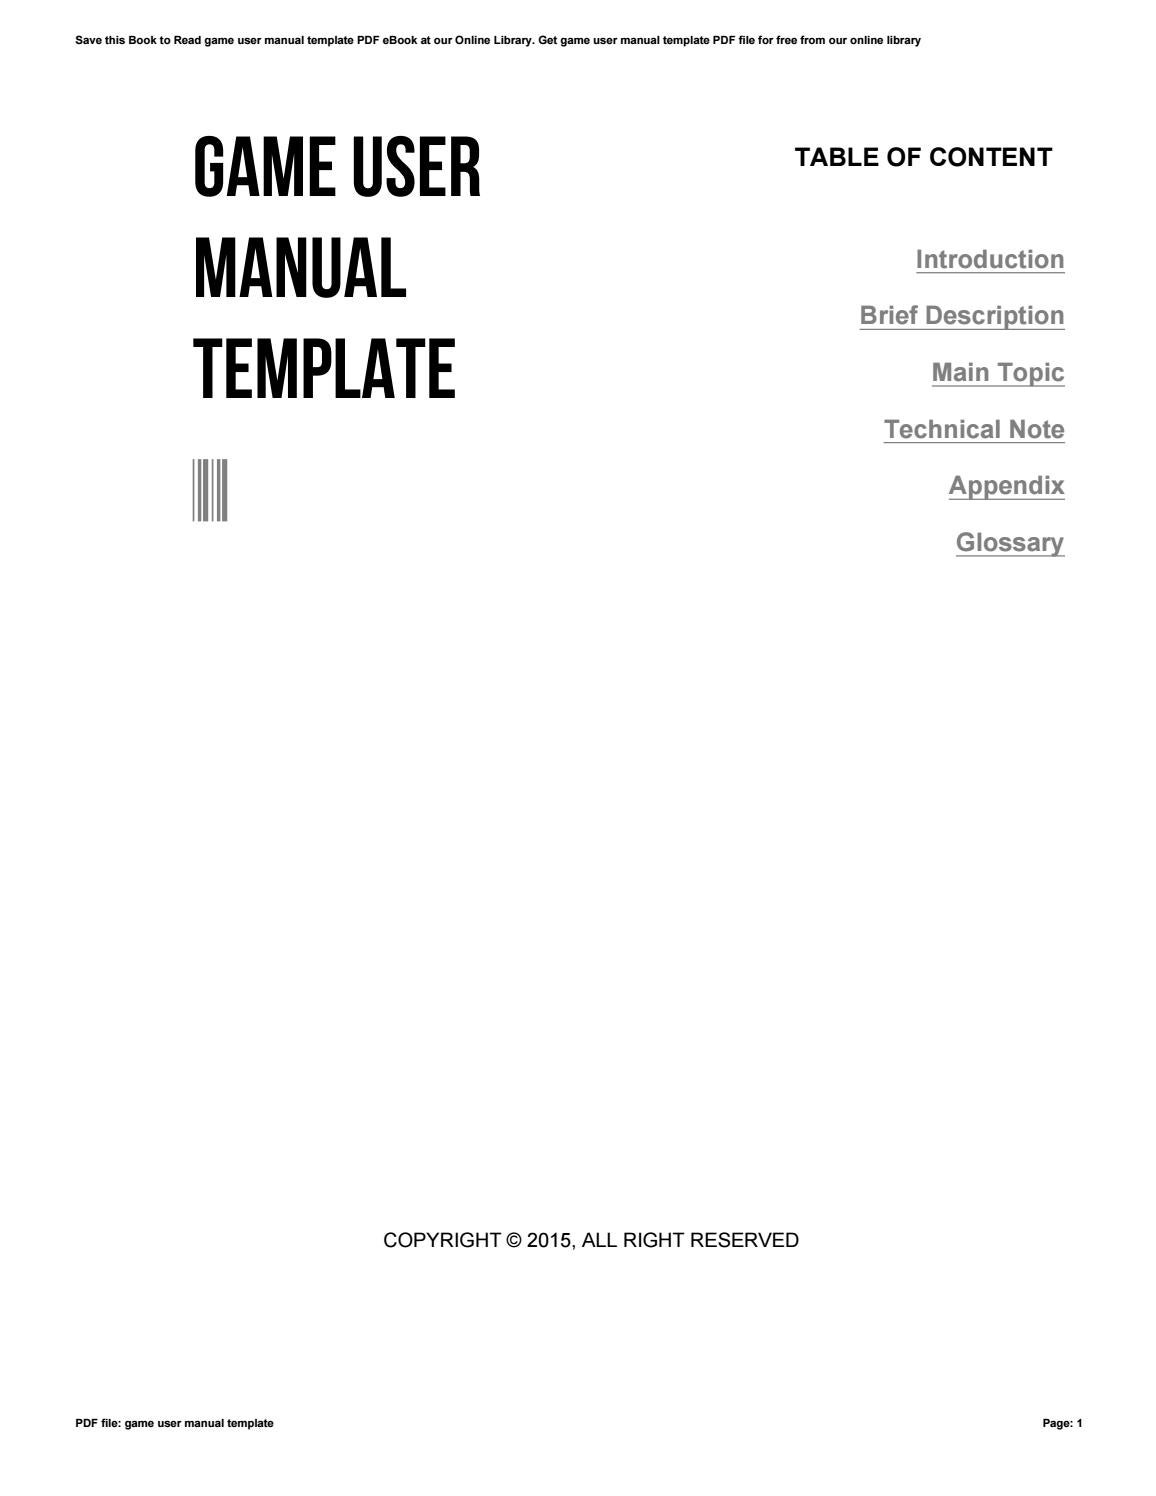 game user manual template by c758 issuu